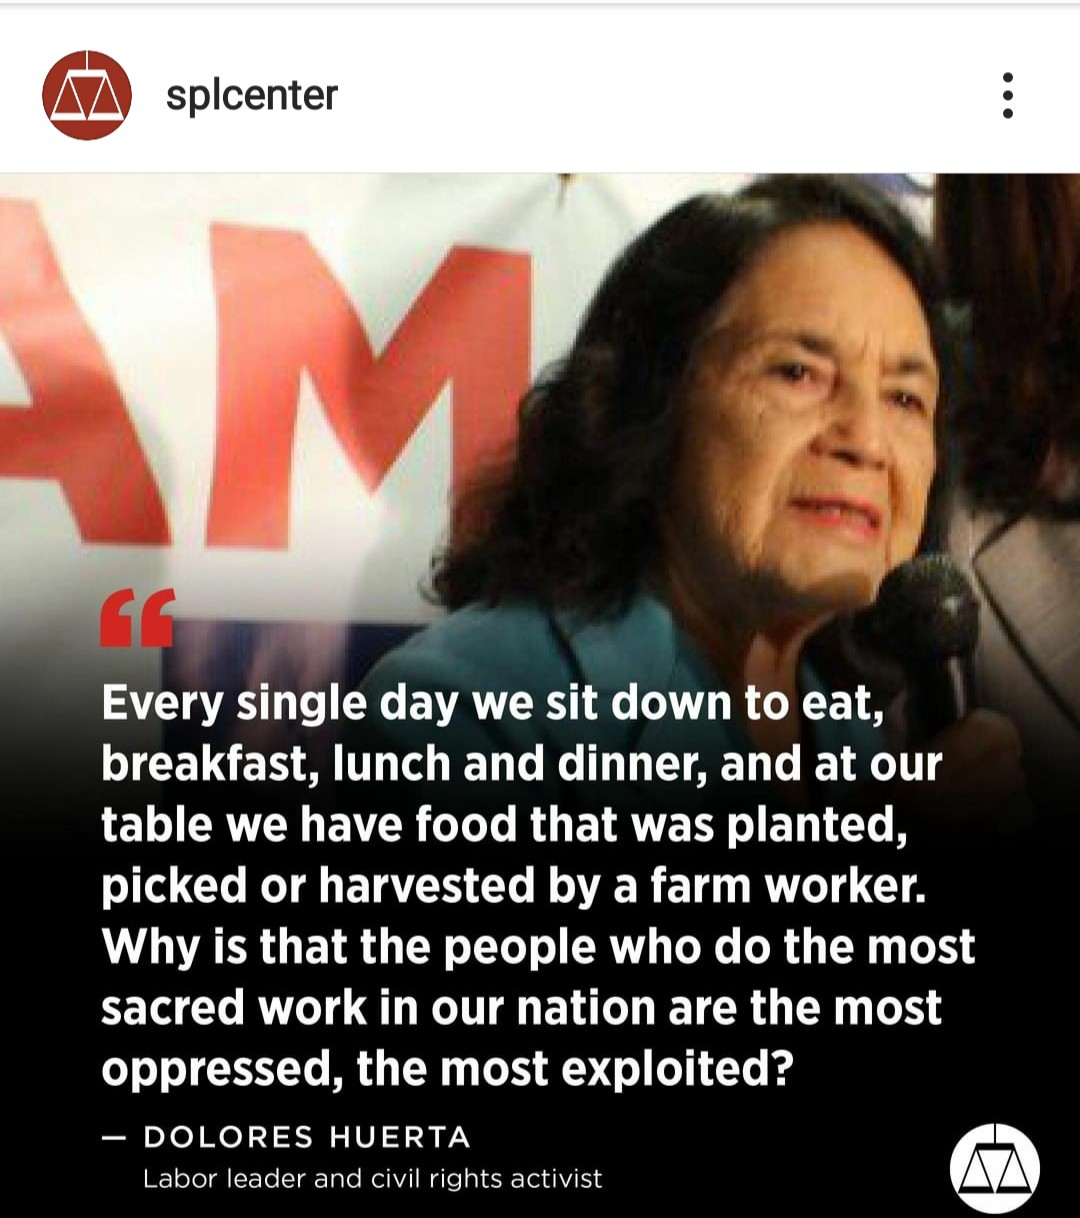 Image of Dolores Huerta, labor leader & civil rights activist asking why those that harvest our food are the most exploited.